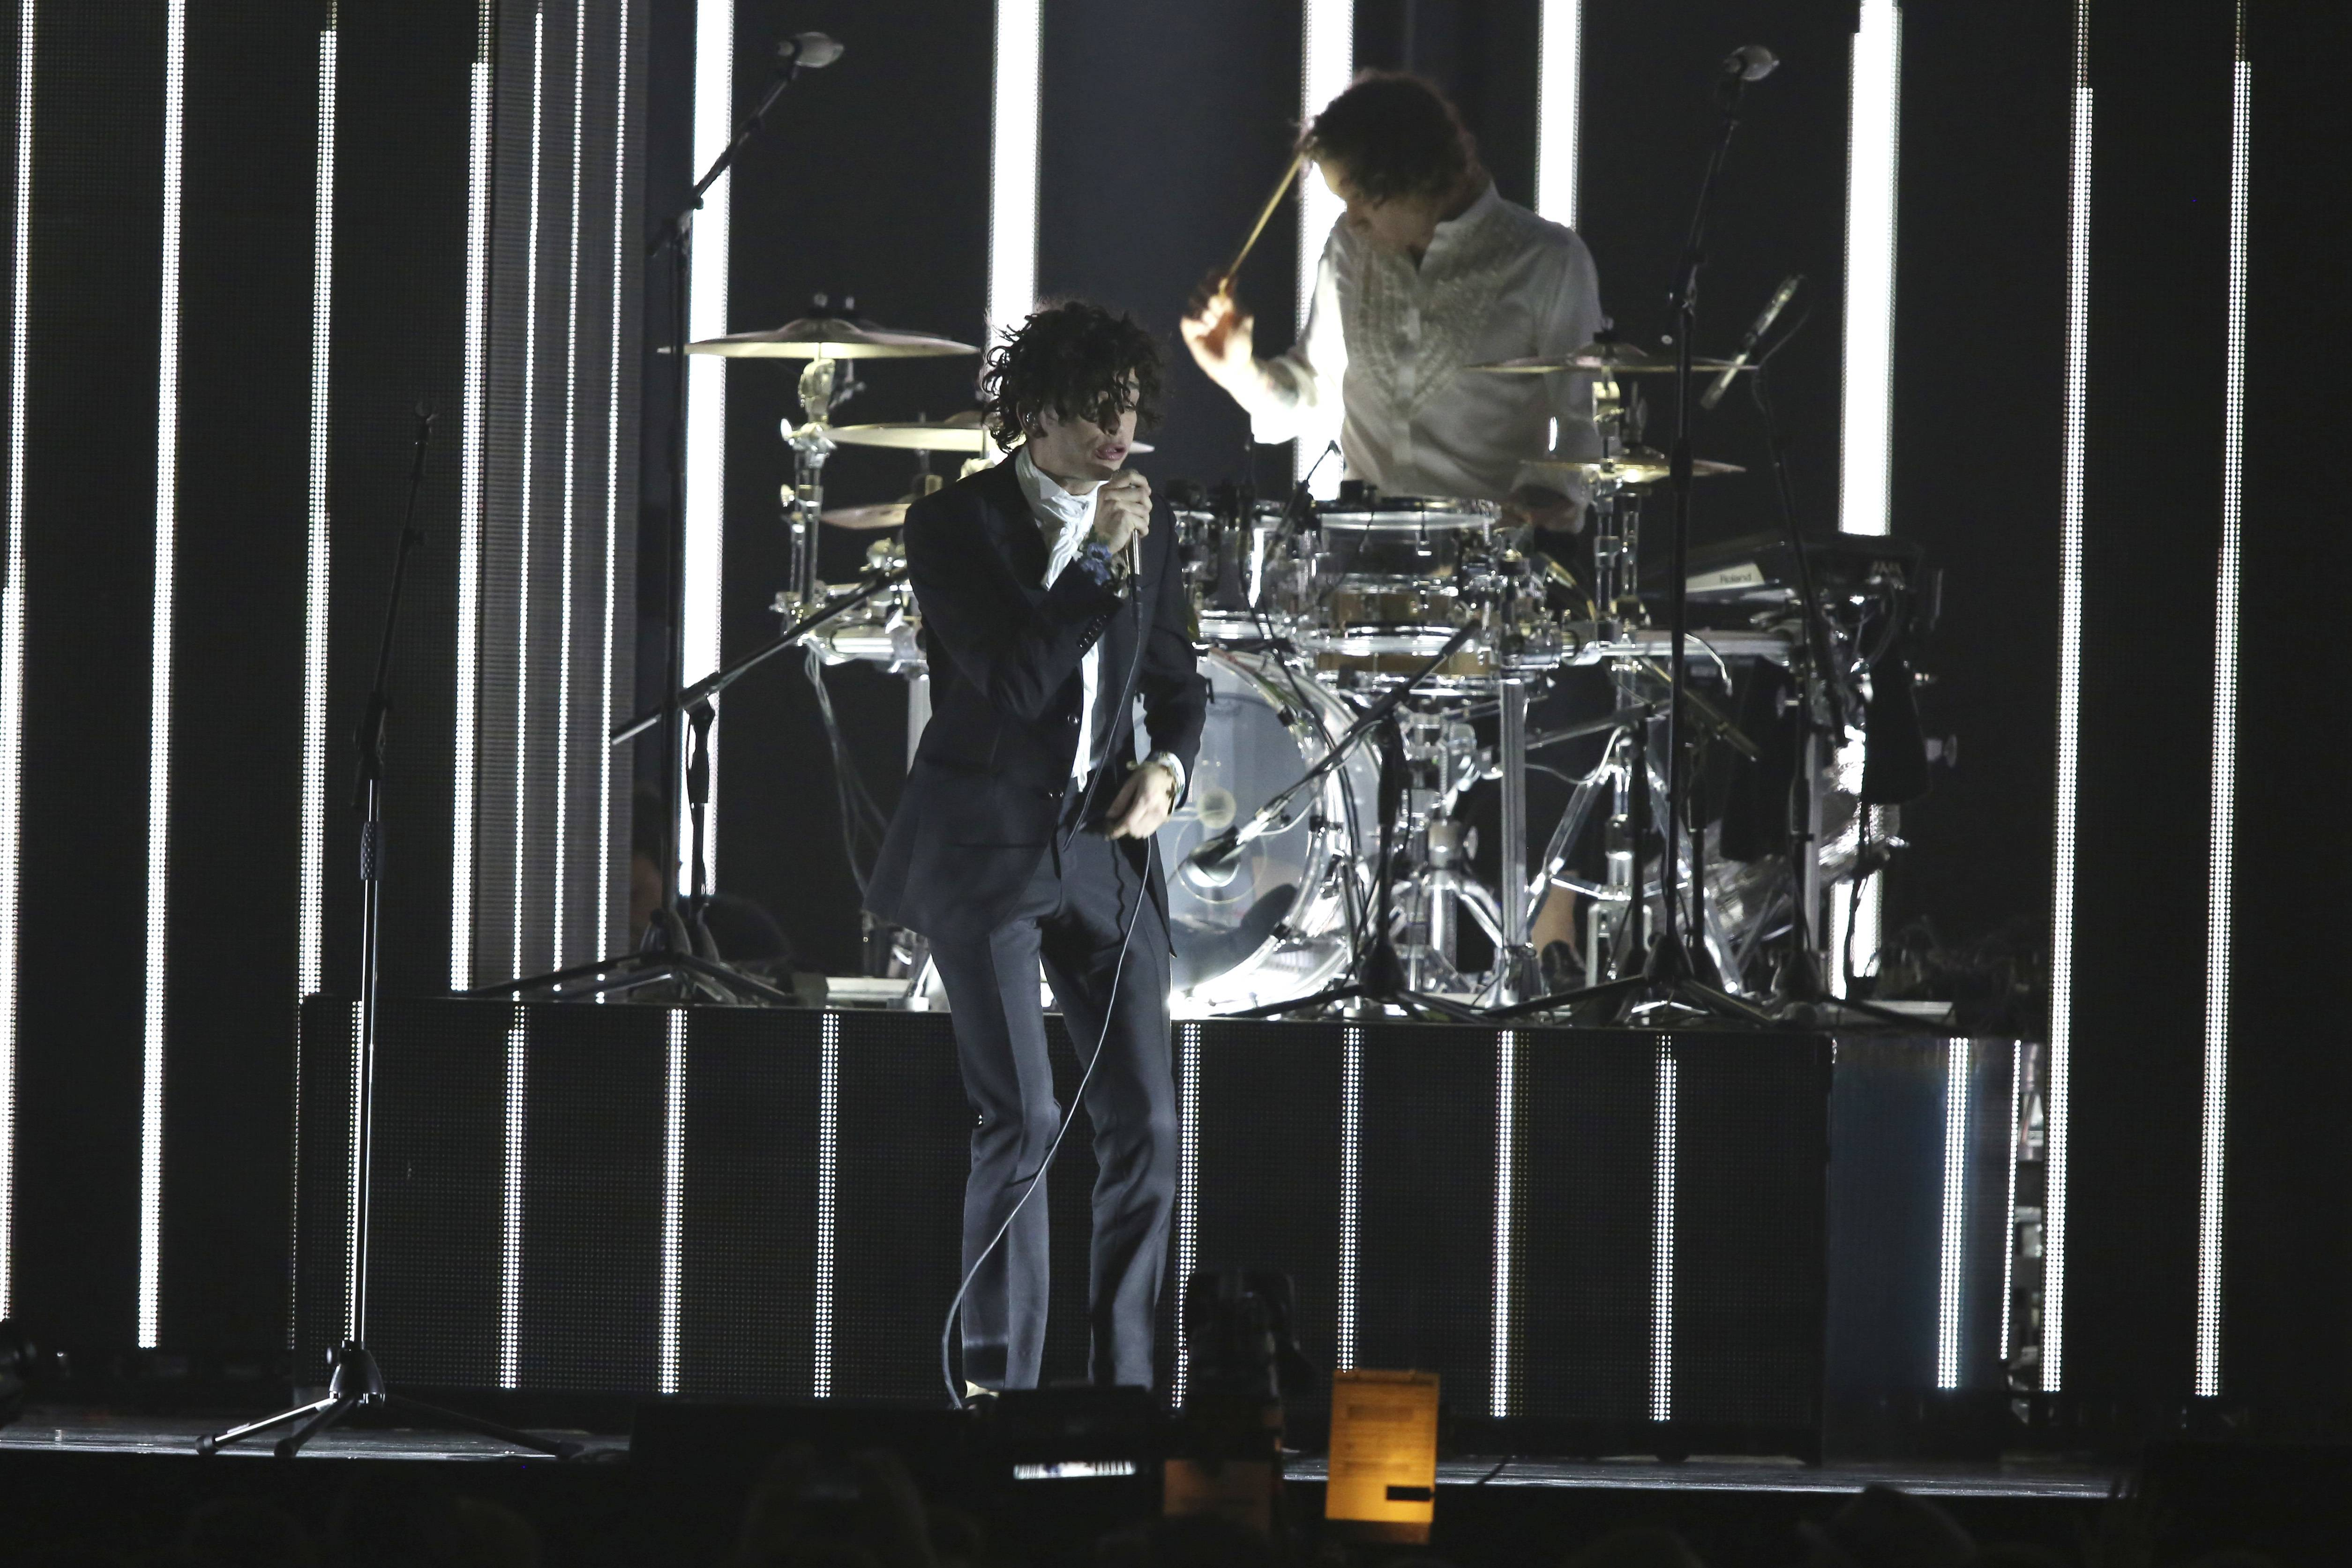 The 1975's U.S. tour brings the British band to the Hollywood Casino Amphitheatre in Tinley Park on Saturday, May 20.